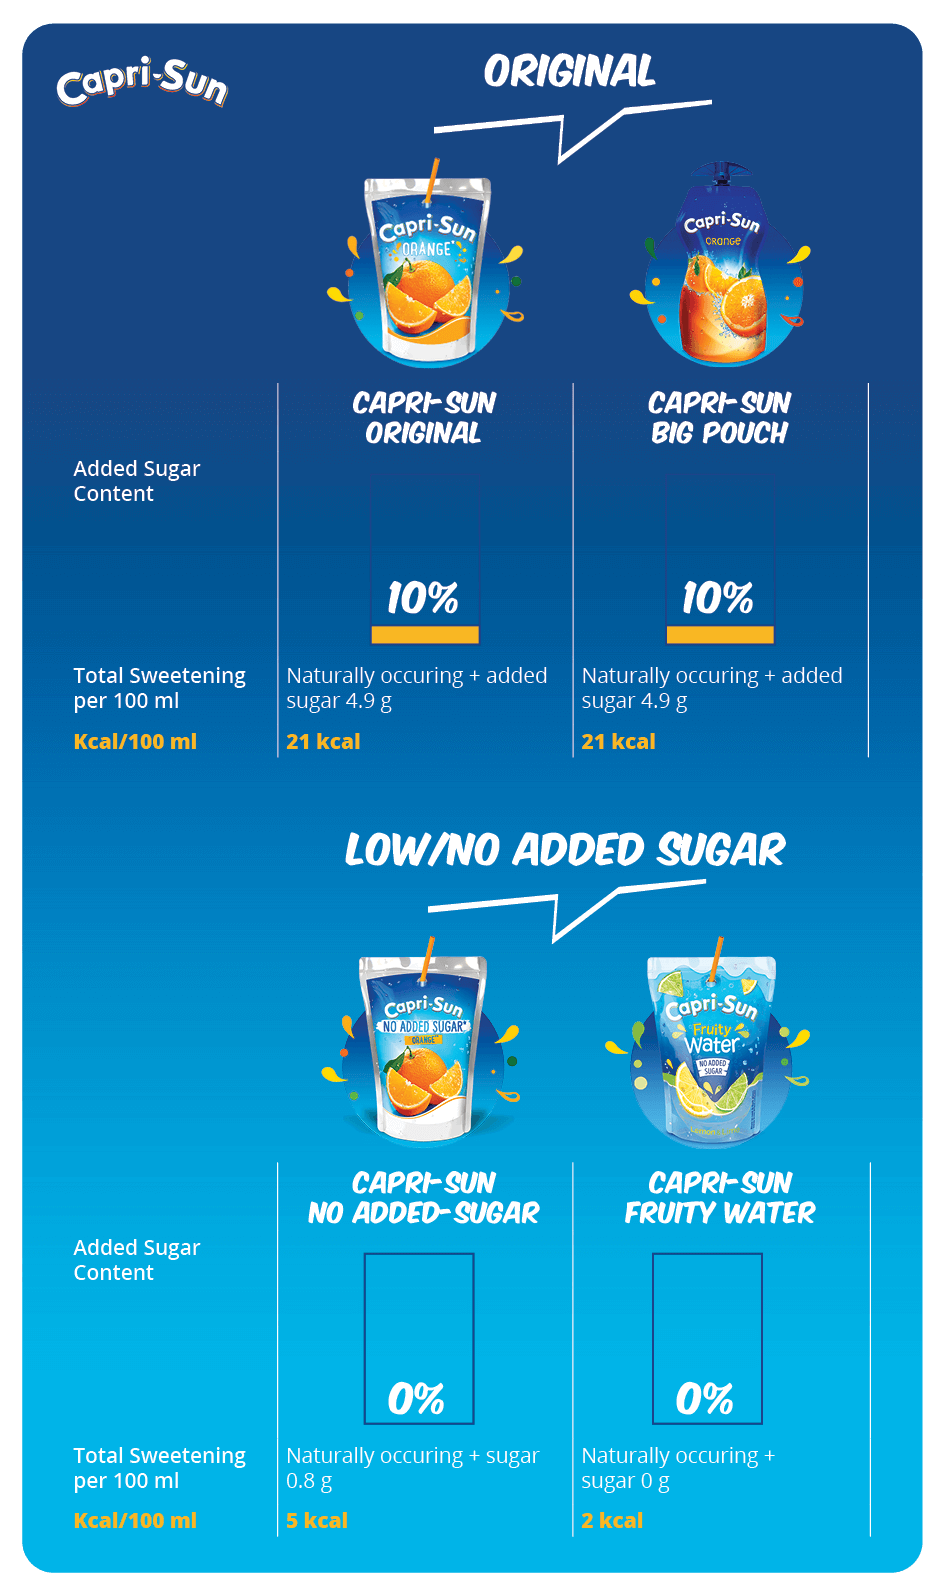 Sugar content in product range of Capri-Sun in Great Britain. Infographic showing the comparison of time needed for different activities daylife to burn off calories of Capri-sun, orange juice or grape juice.